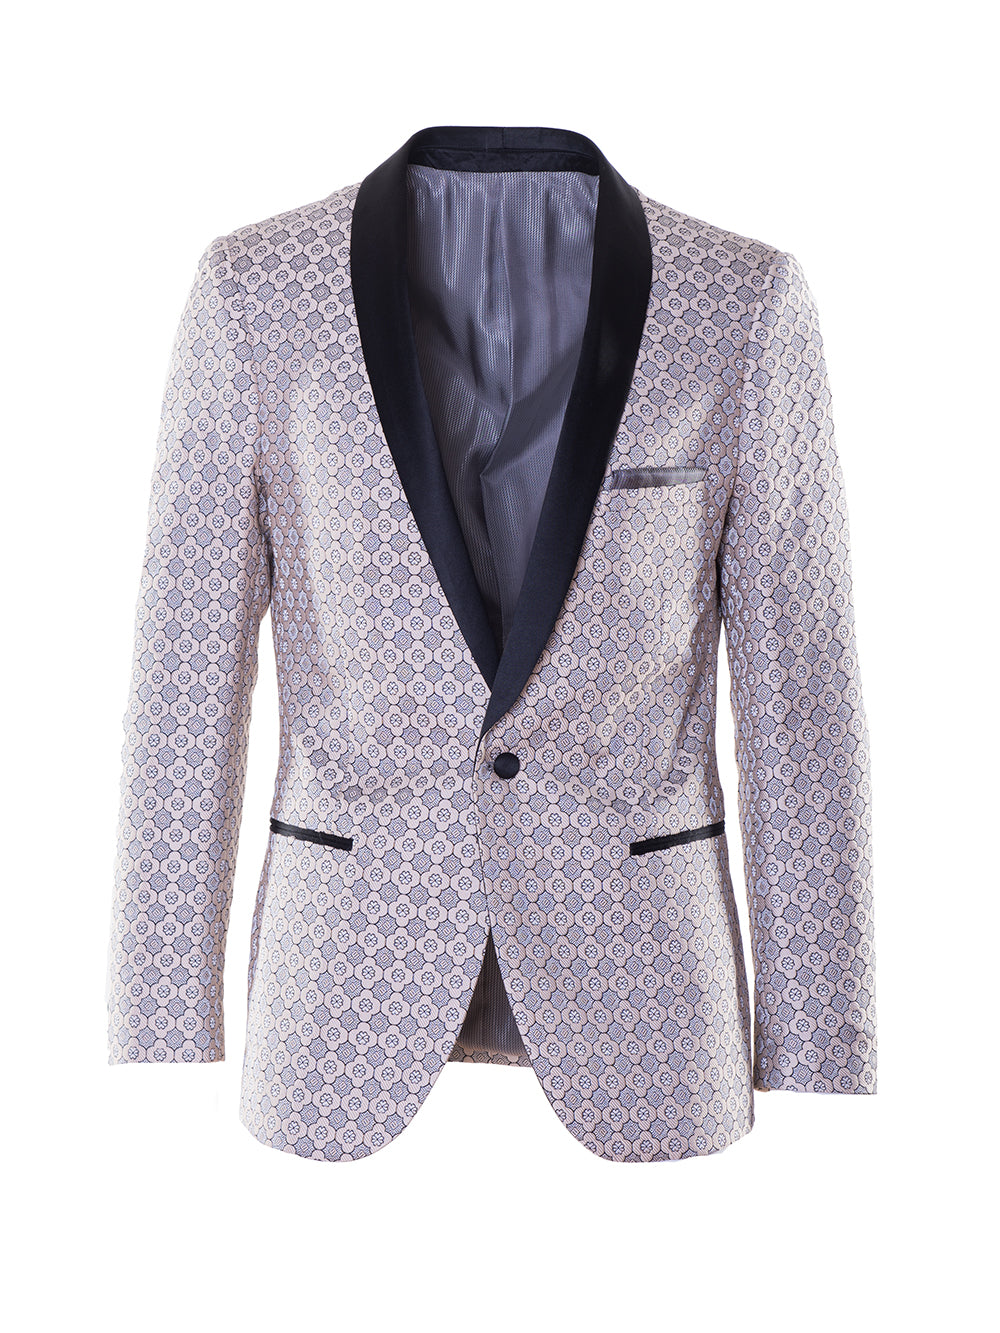 Regent Shawl Dinner Jacket - Cream Silver Jacquard